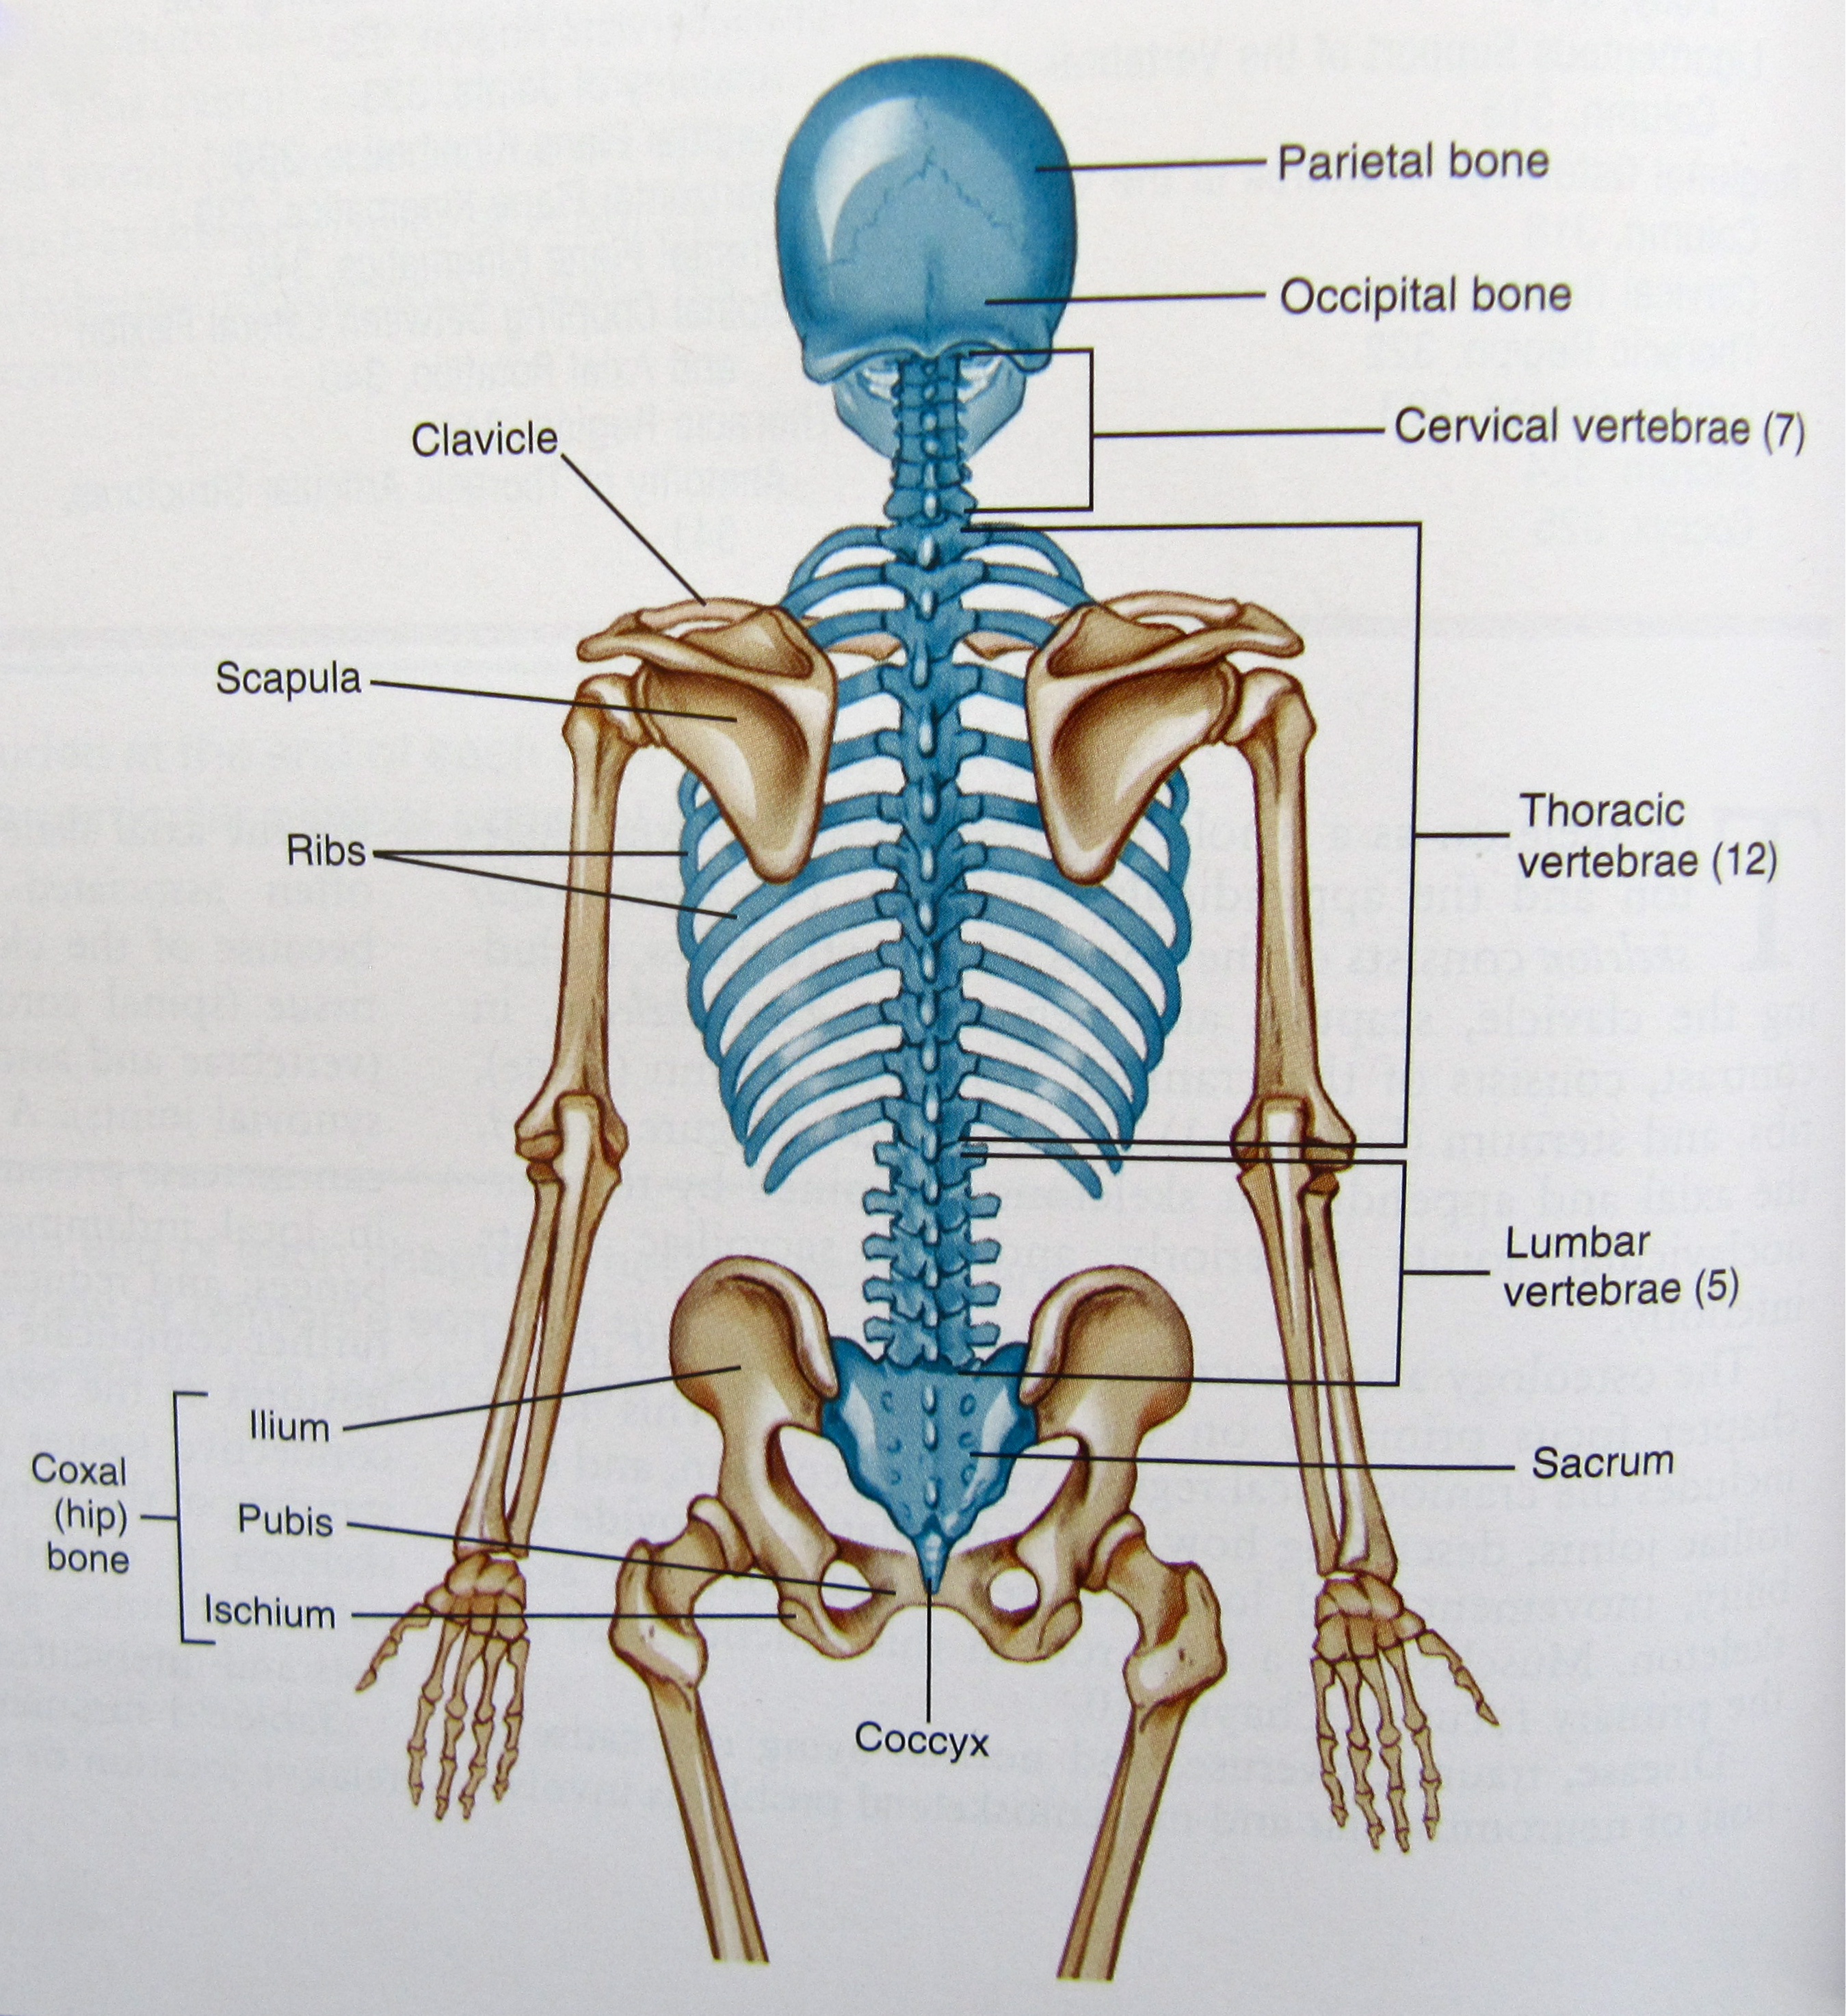 face bone diagram wiring in series axial skeleton dramatic context